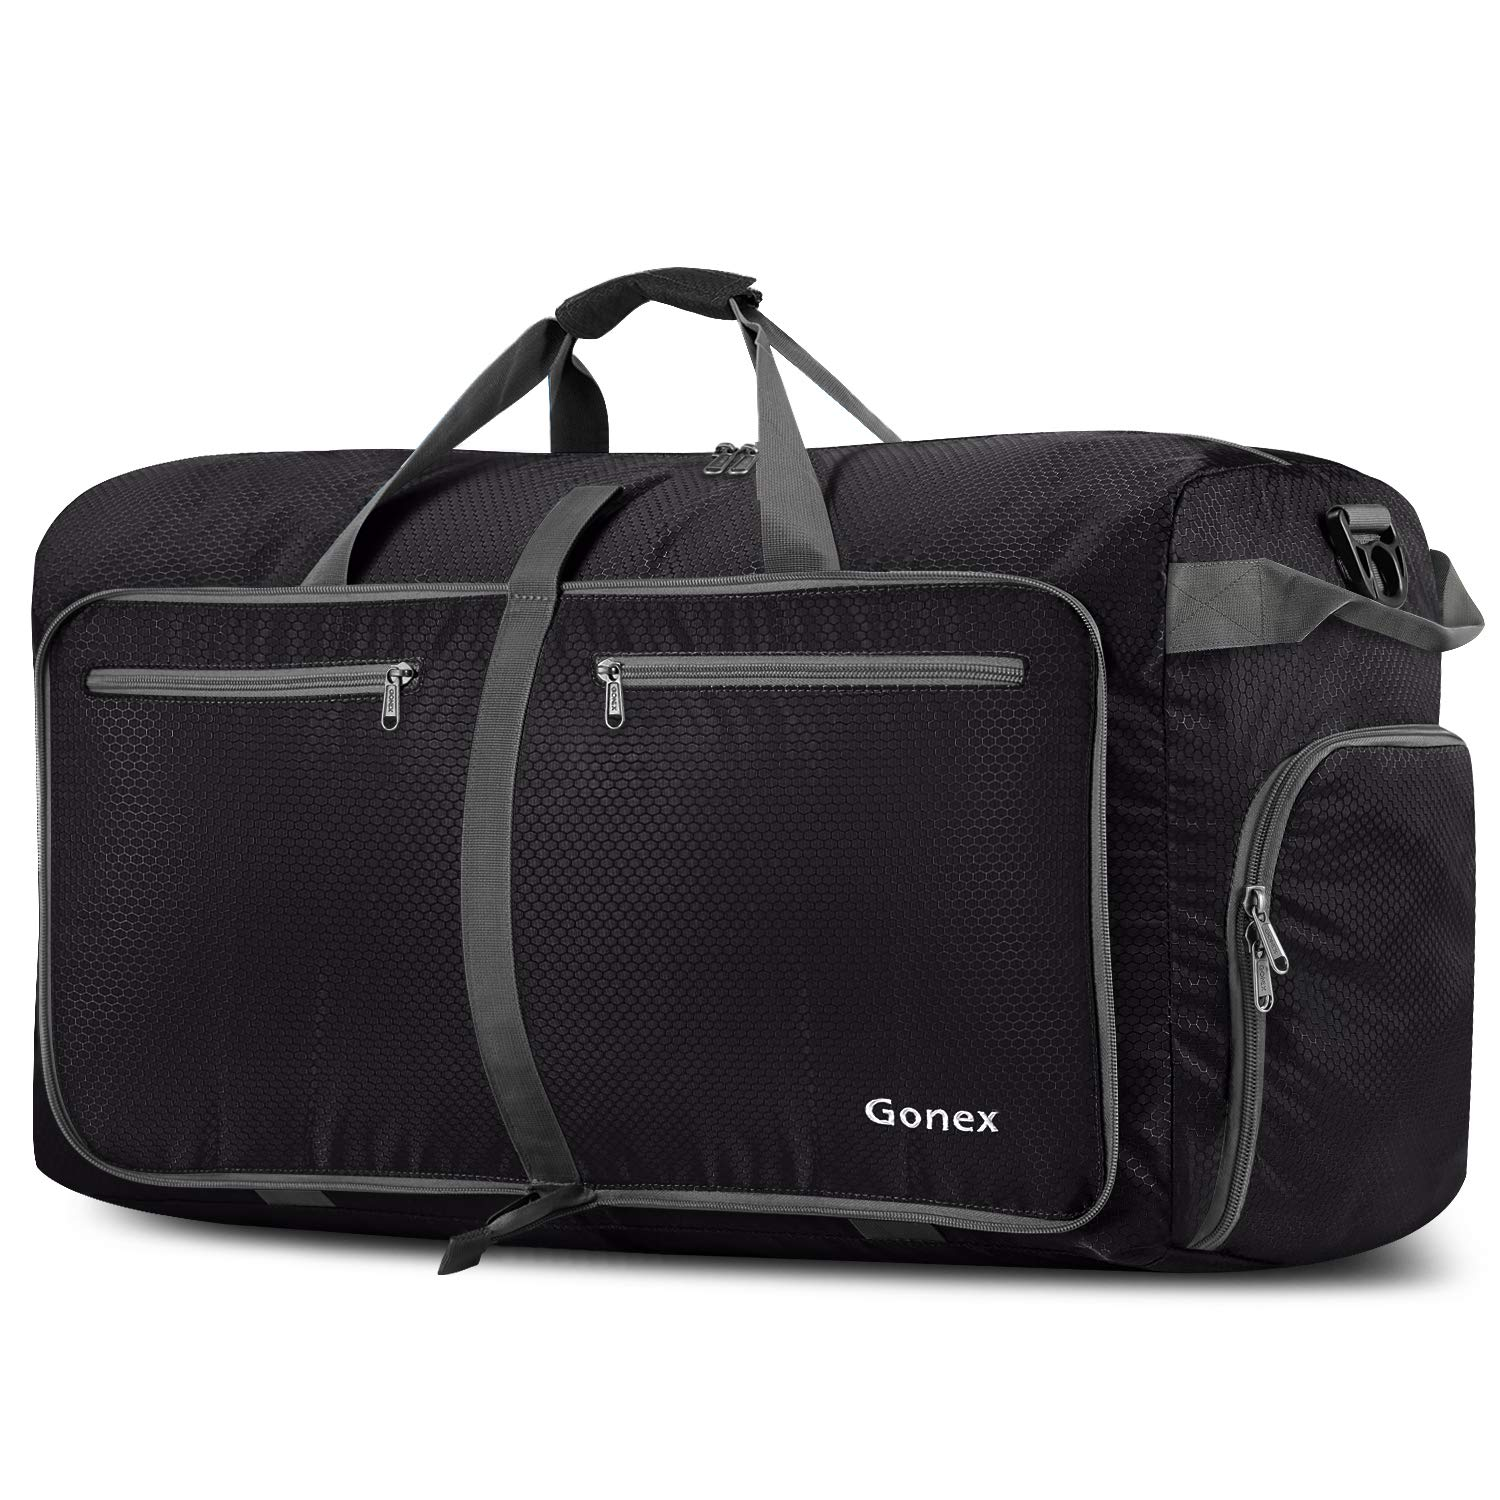 Amazon.com  Gonex 100L Packable Travel Duffle Bag, Extra Large Luggage  Duffel (Black)  Sports   Outdoors 4c8314d711